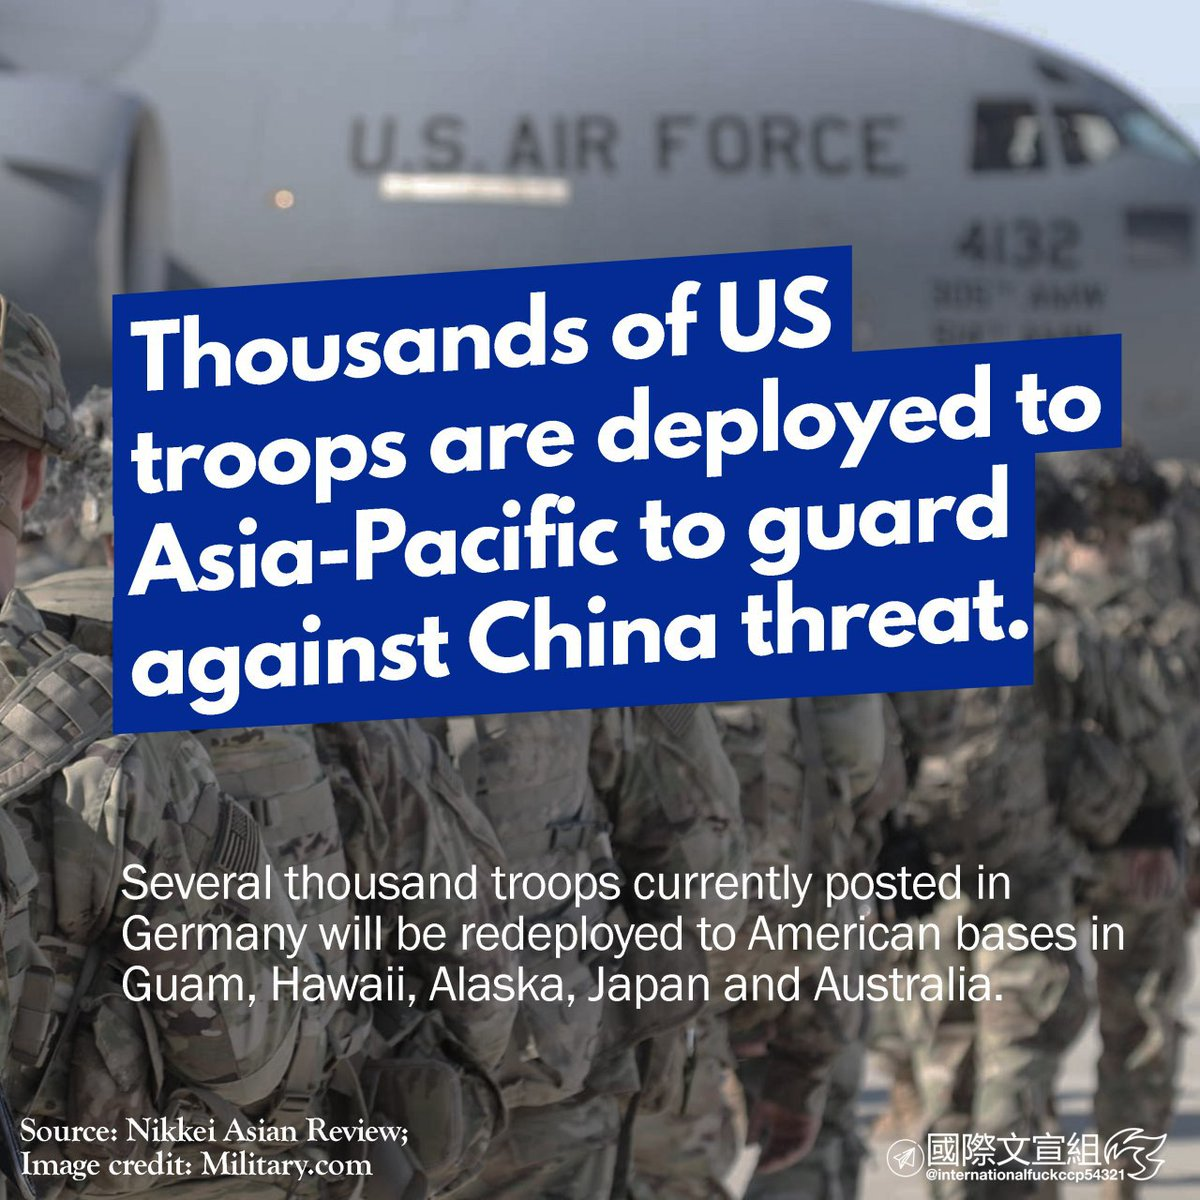 A hot war doesn't look impossible anymore. - #China #AsiaPacific #Asia #USA #US #military #English #DIYms https://t.co/GOgx6JEvbl